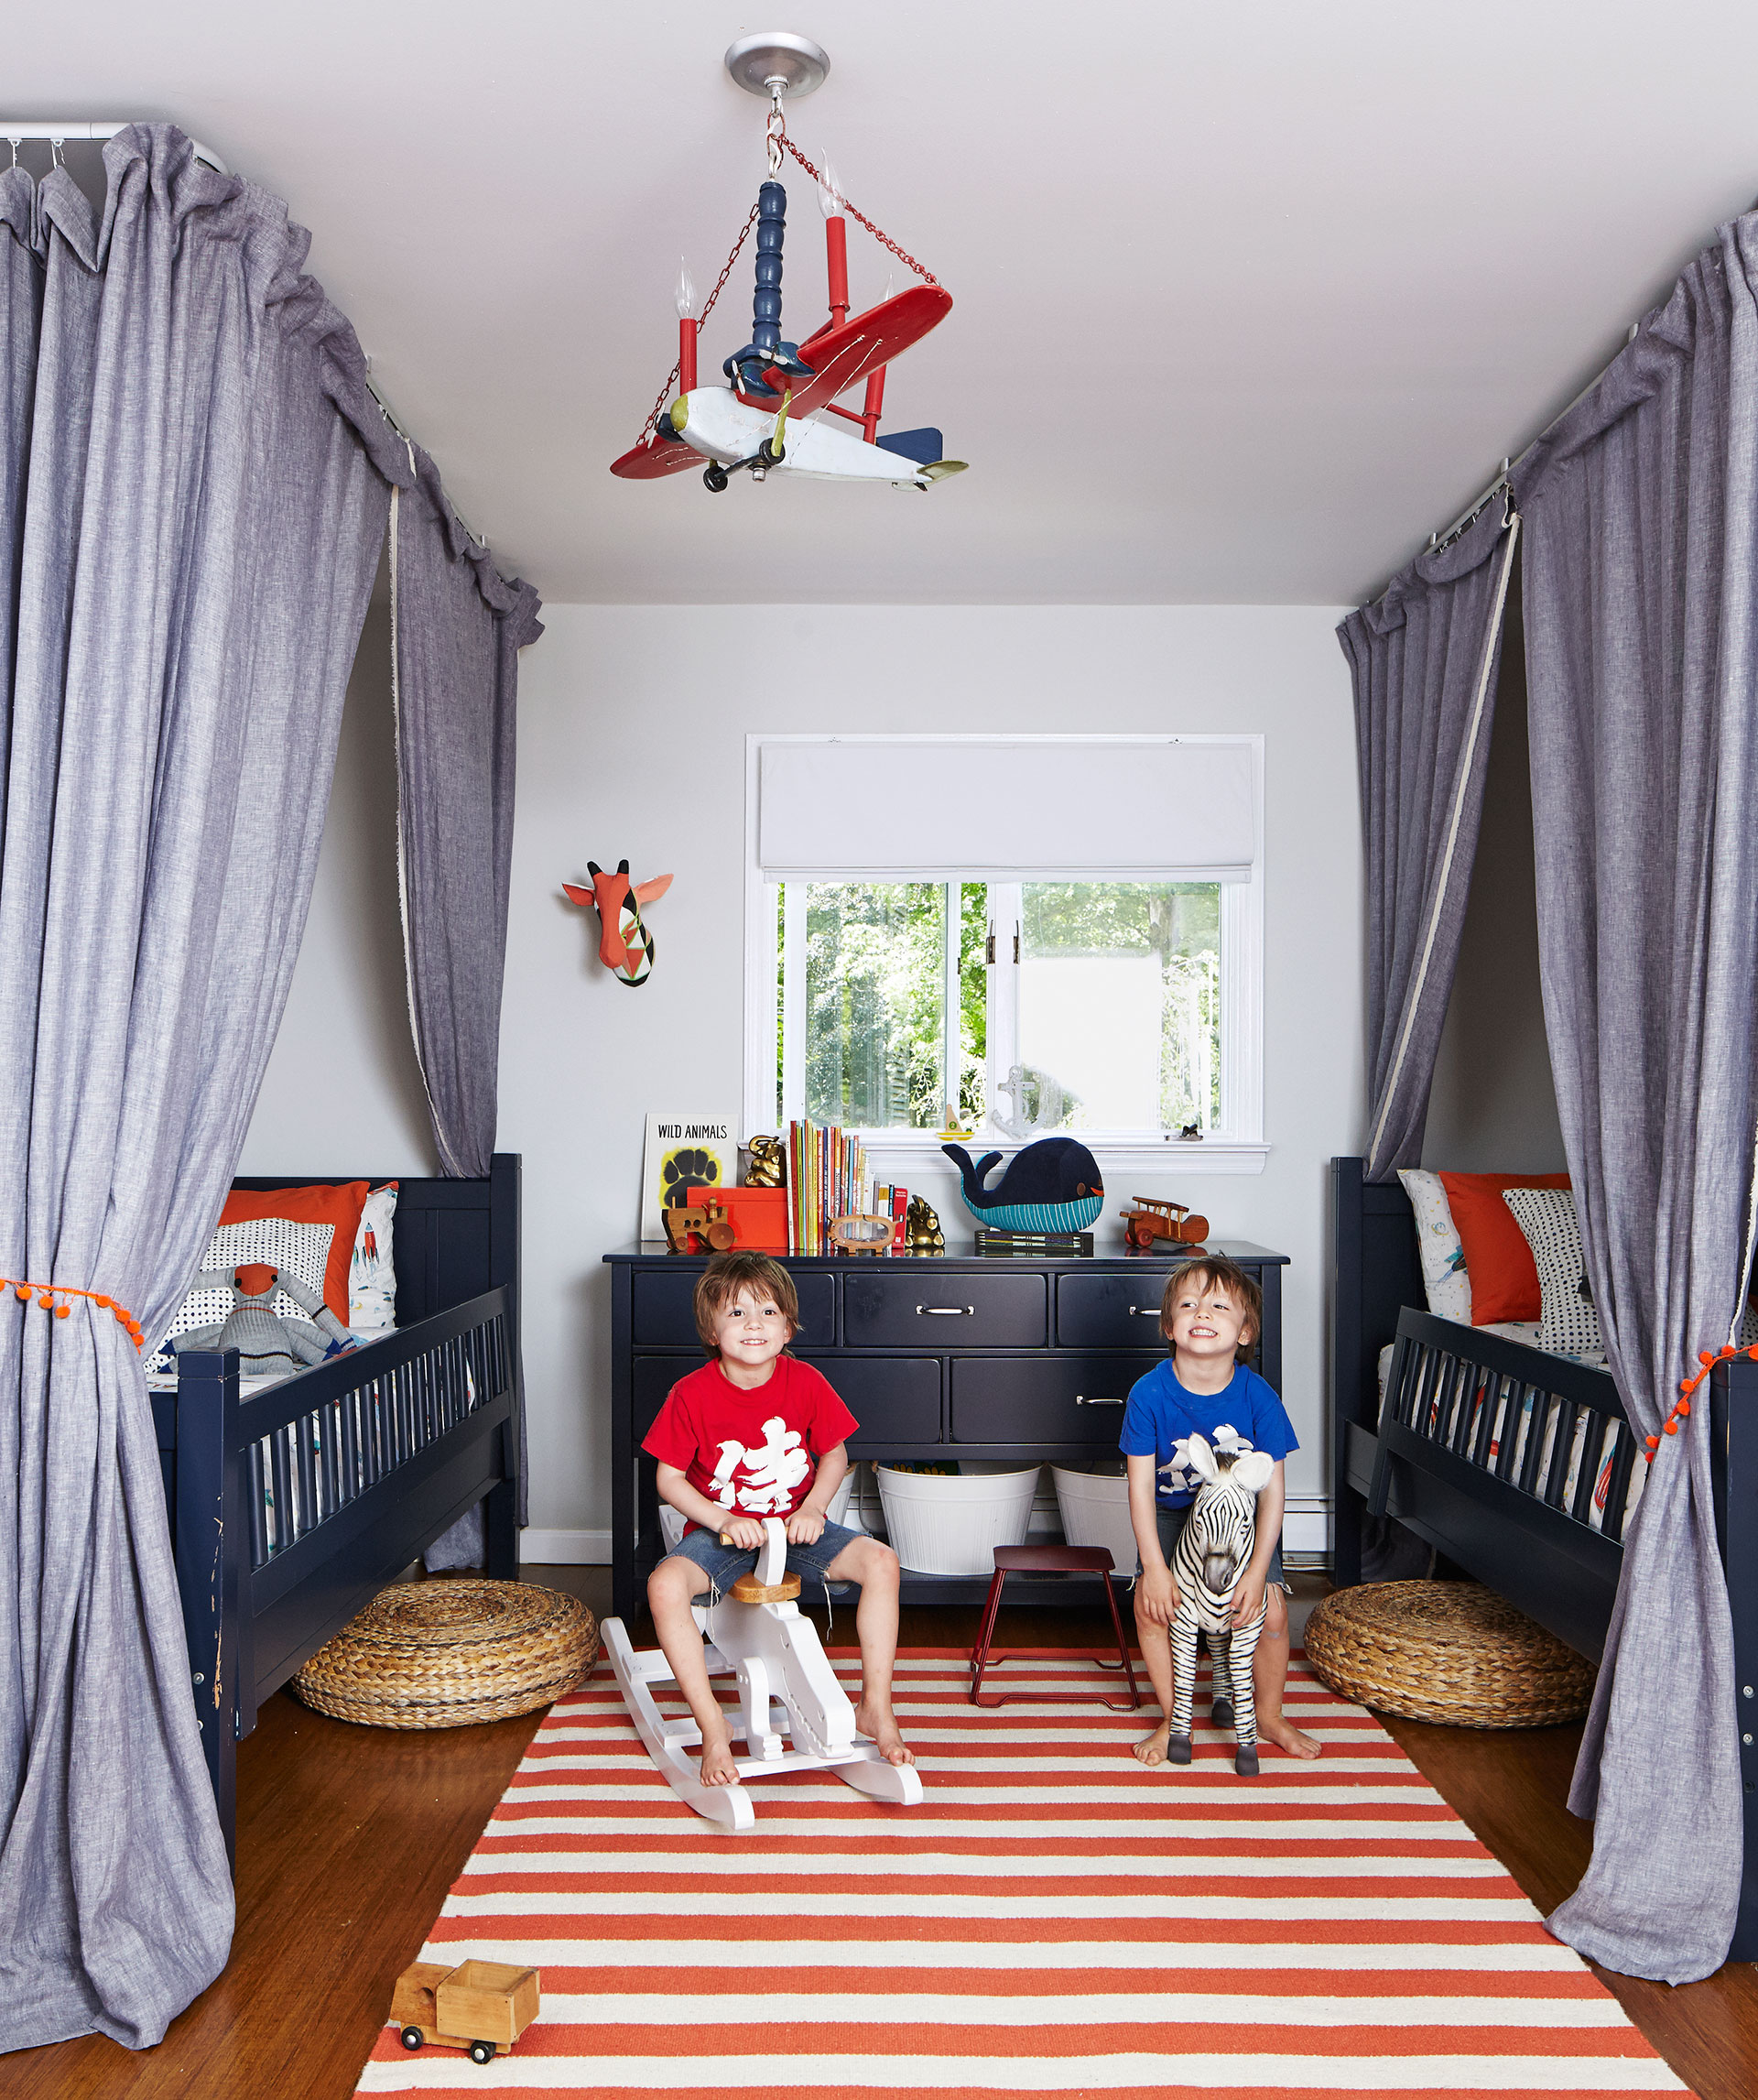 . 50  Kids Room Decor Ideas   Bedroom Design and Decorating for Kids